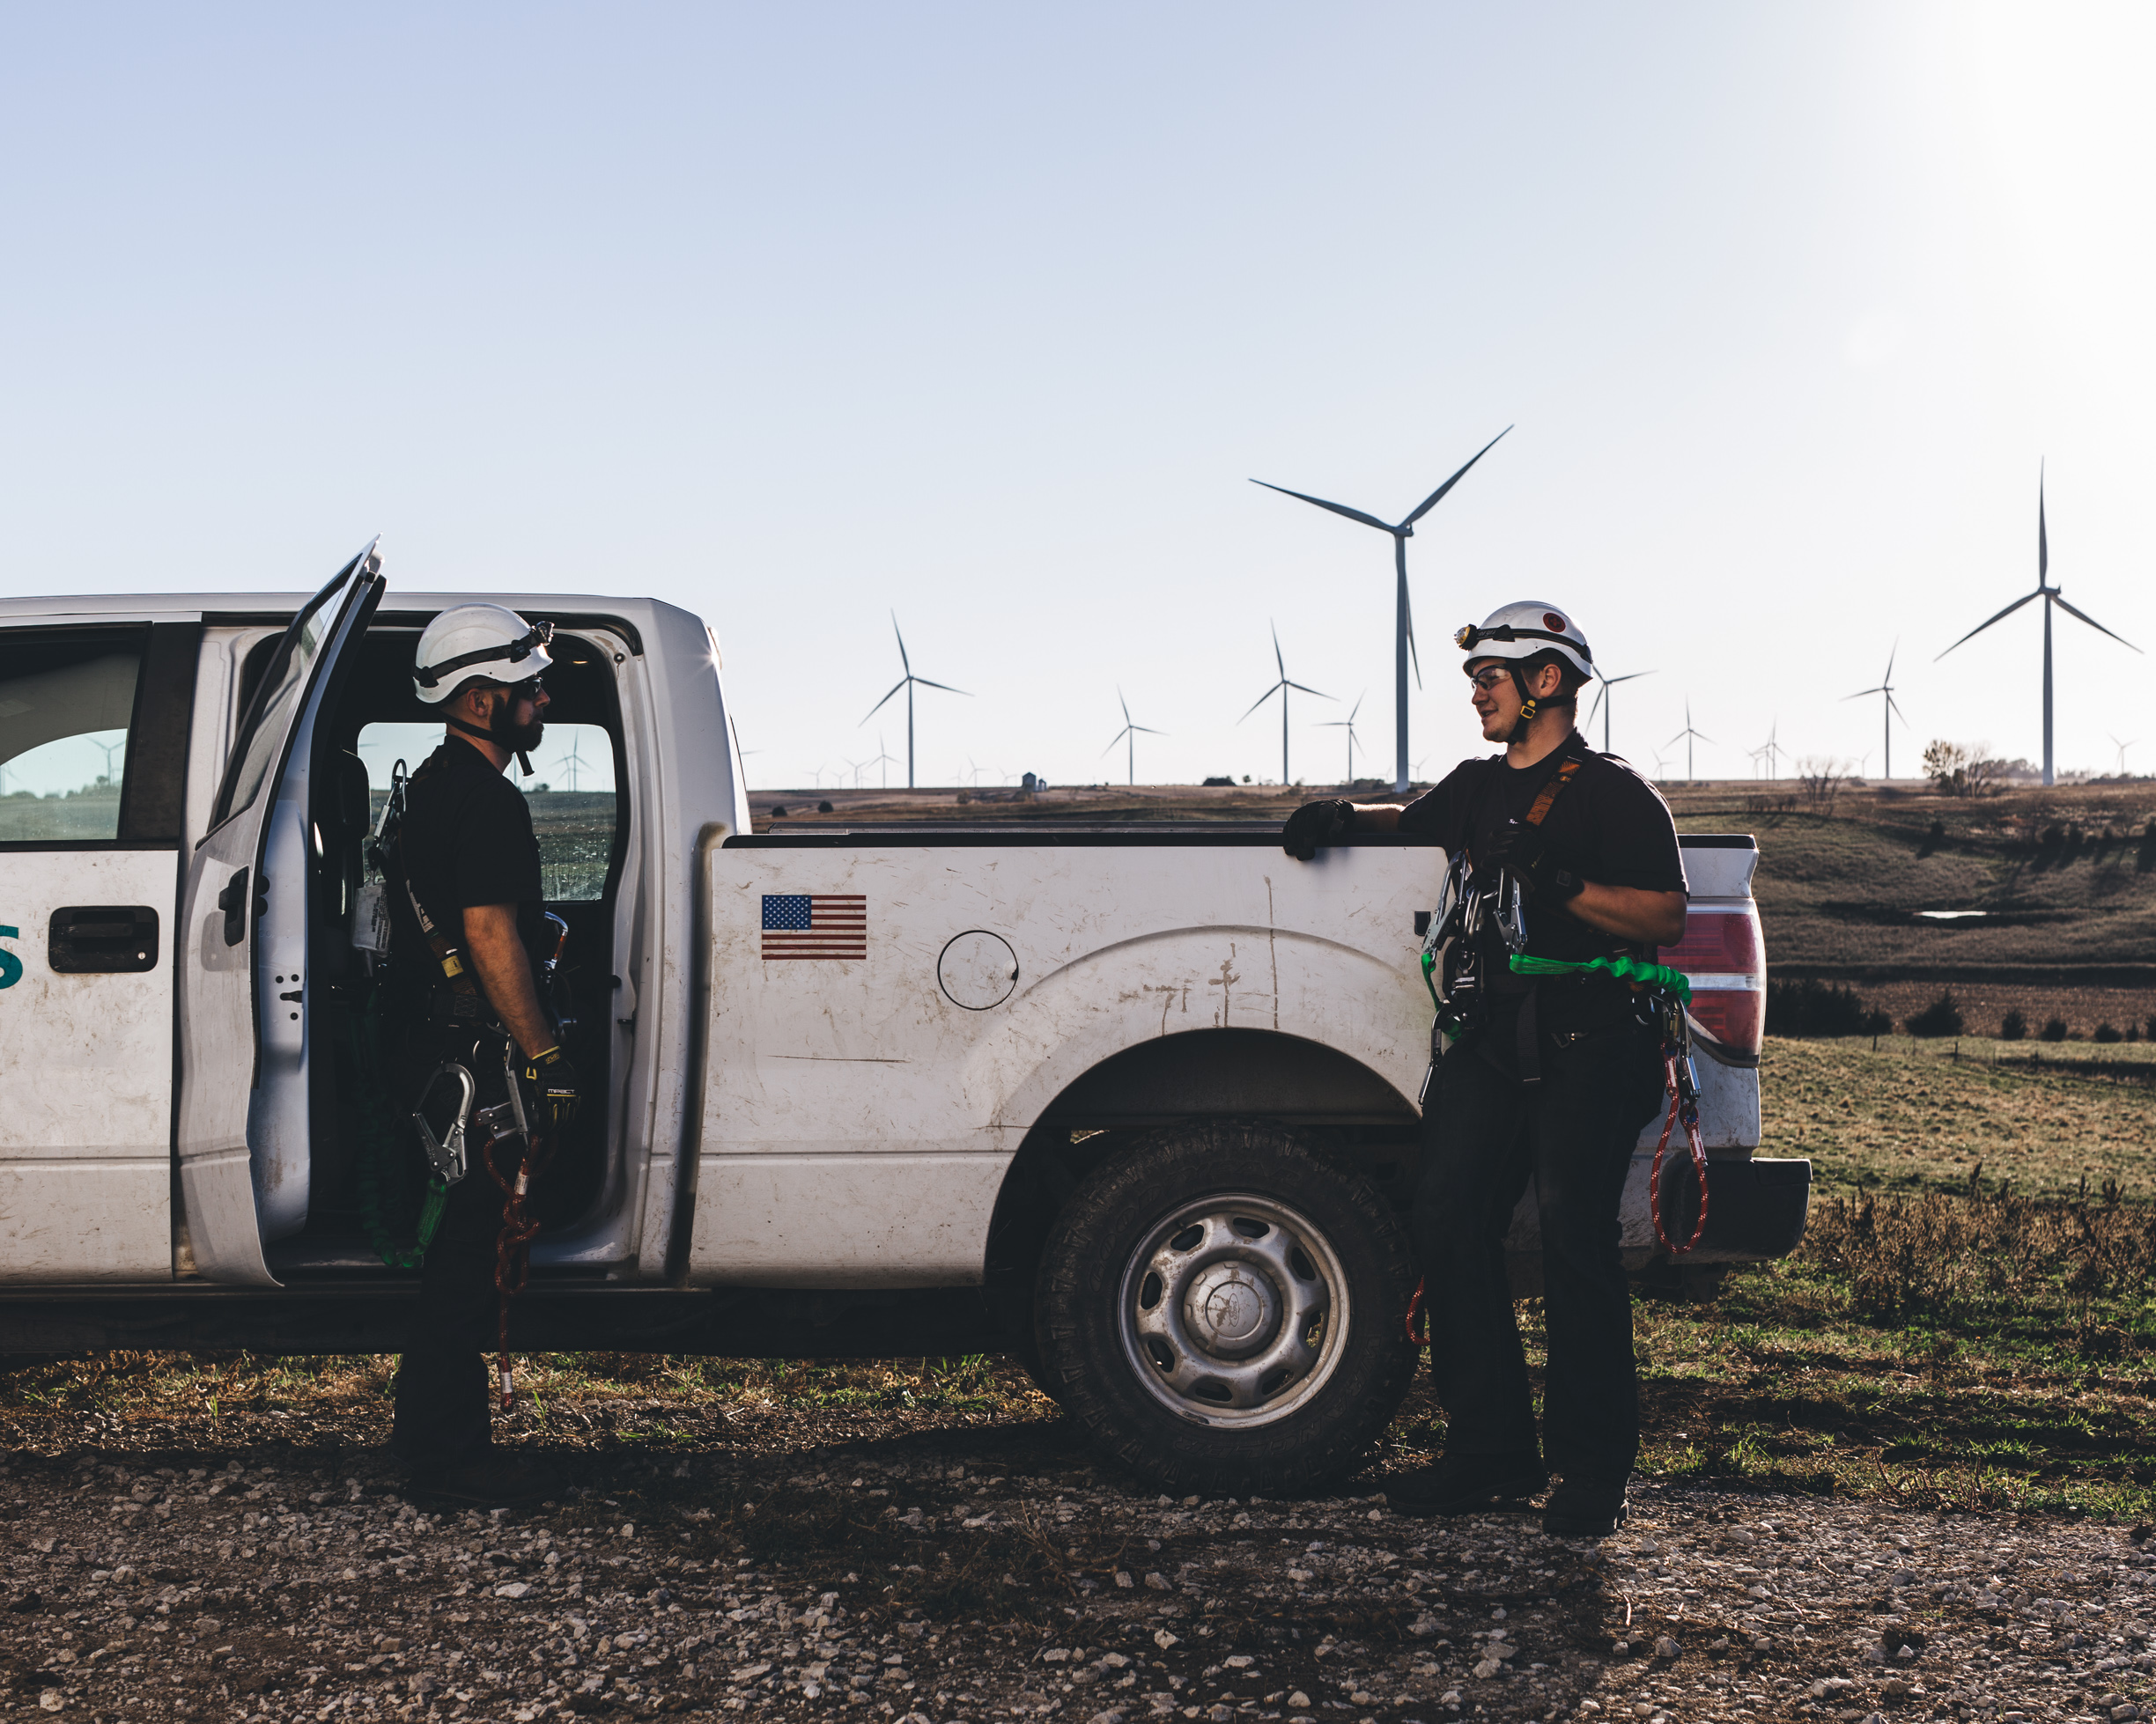 U.S. wind power puts Americans back to work